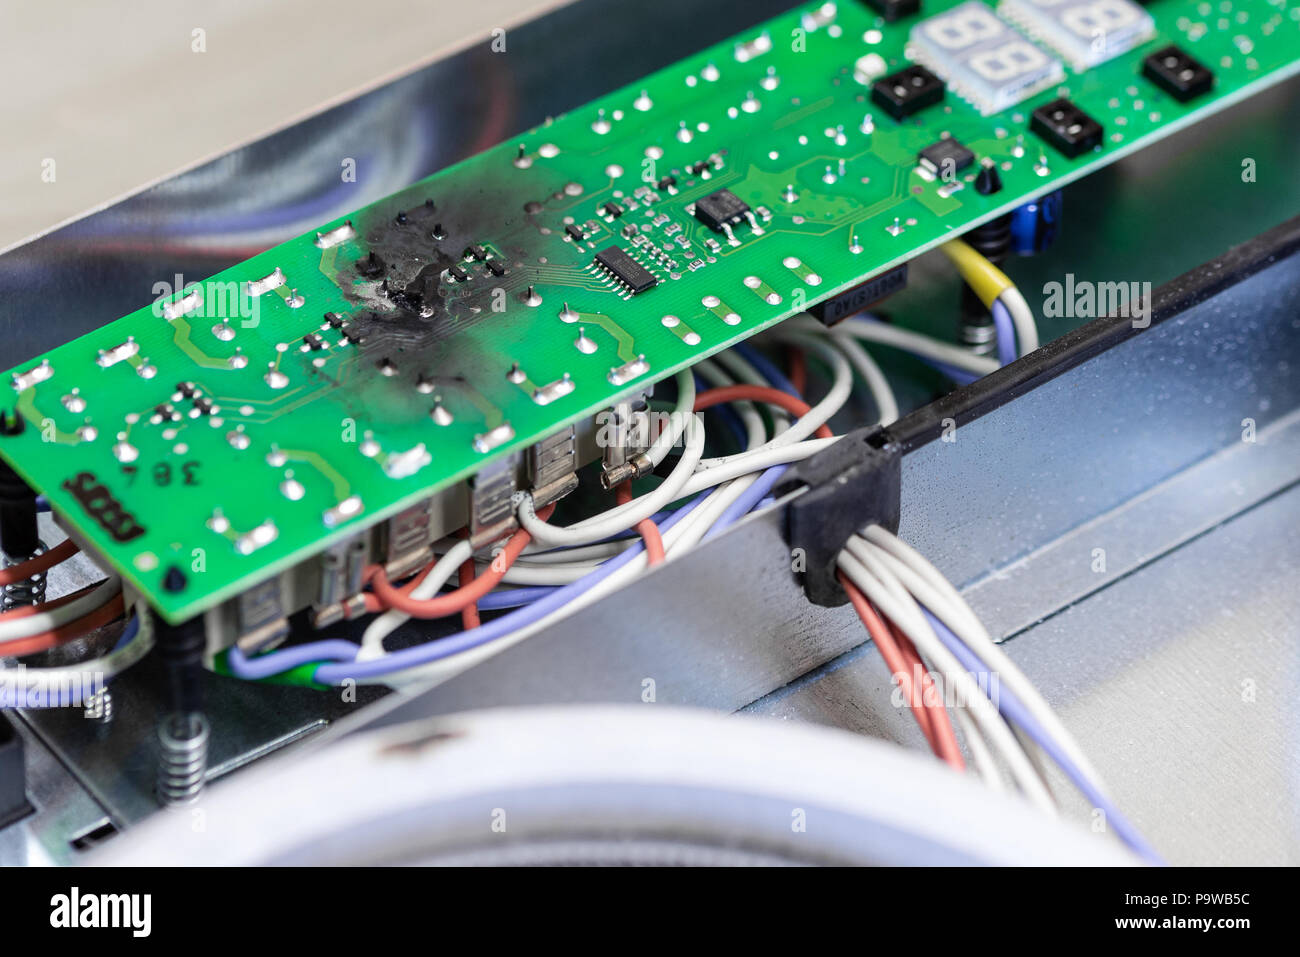 Electrical Short Circuit Stock Photos Wiring Burnt Green Microchip After Due To Water Damage Damaged Overheat Control Panel Board